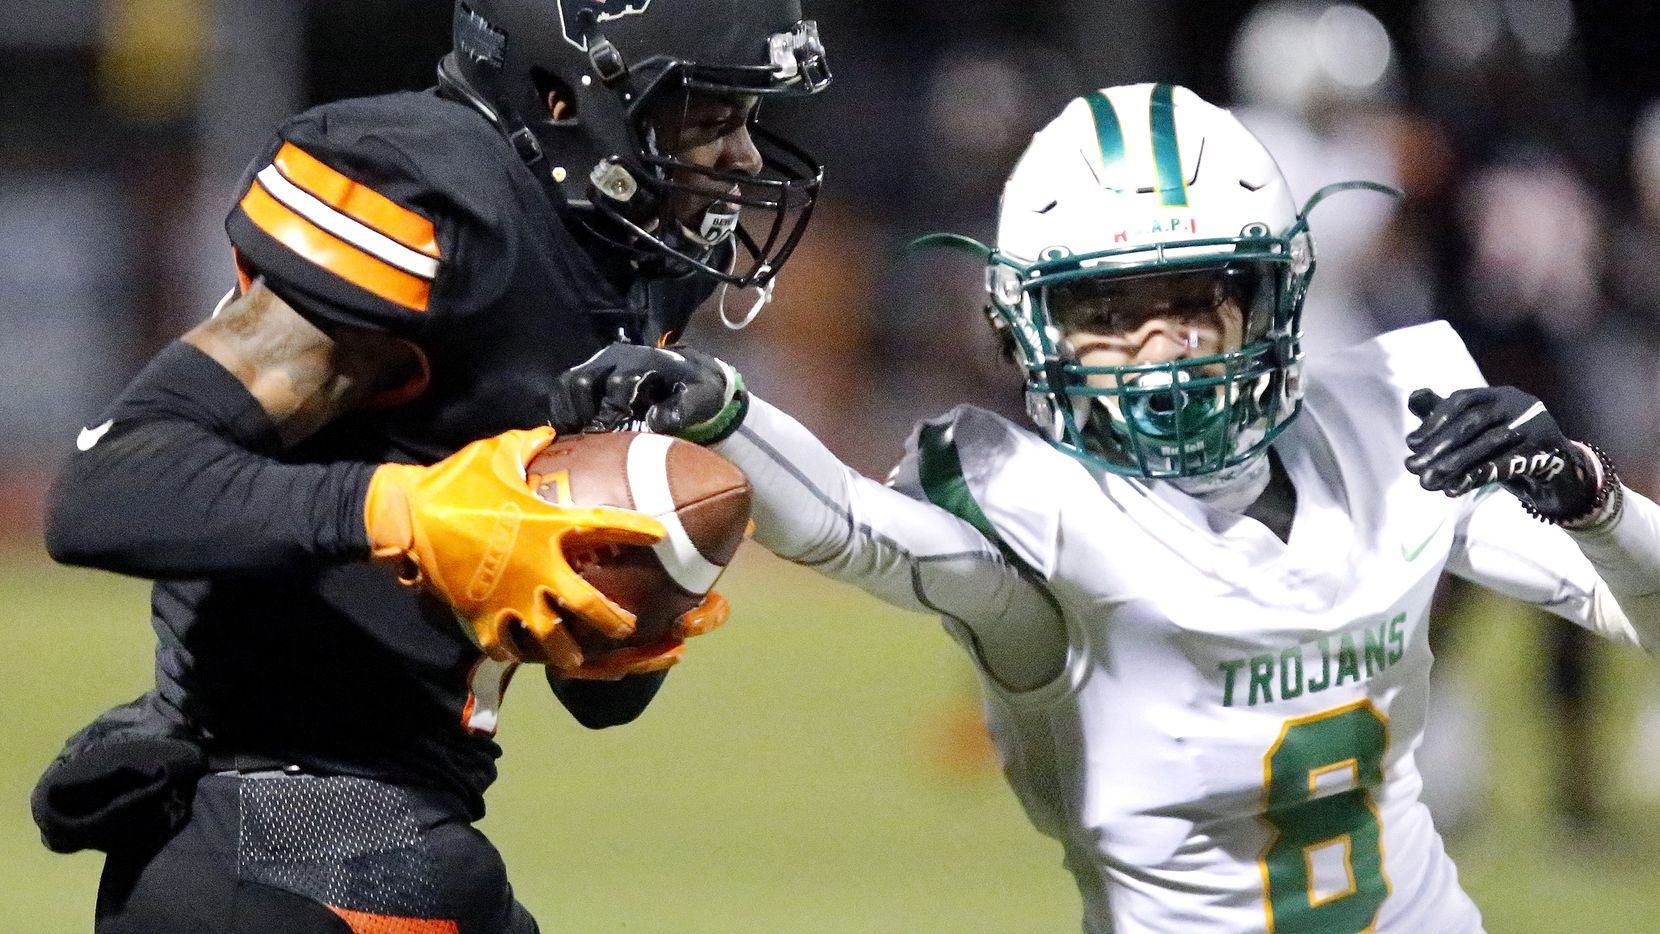 Lancaster High School wide receiver Tony Evans, Jr. (19) catches a pass at Beverly D. Humphrey Tiger Stadium in Lancaster on October 16, 2020. Evans was fatally shot Sunday, April 11, 2021, at a hotel in Stemmons Corridor. (Stewart F. House/Special Contributor)